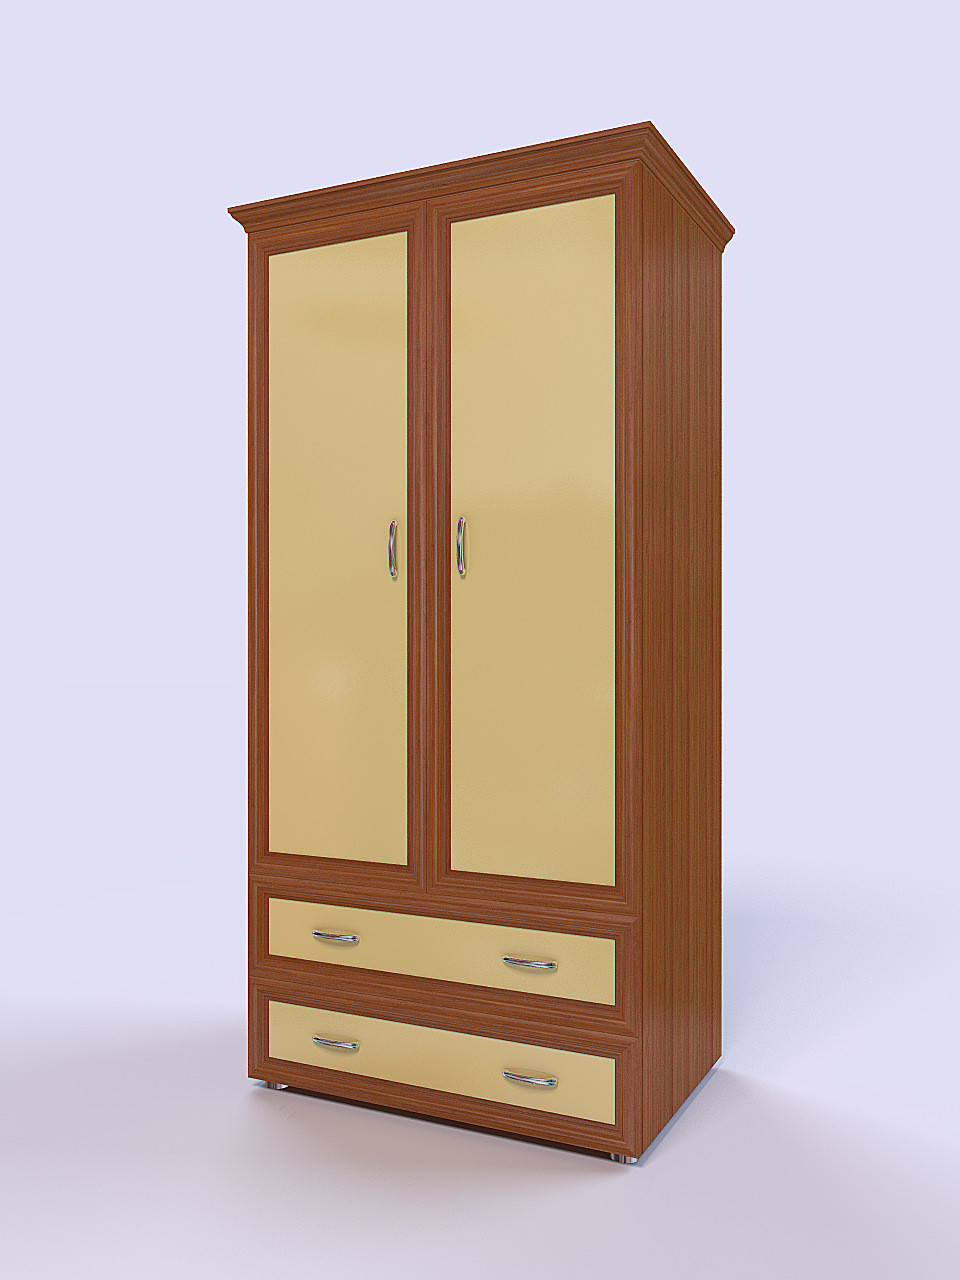 3D Rendering of the cabinet